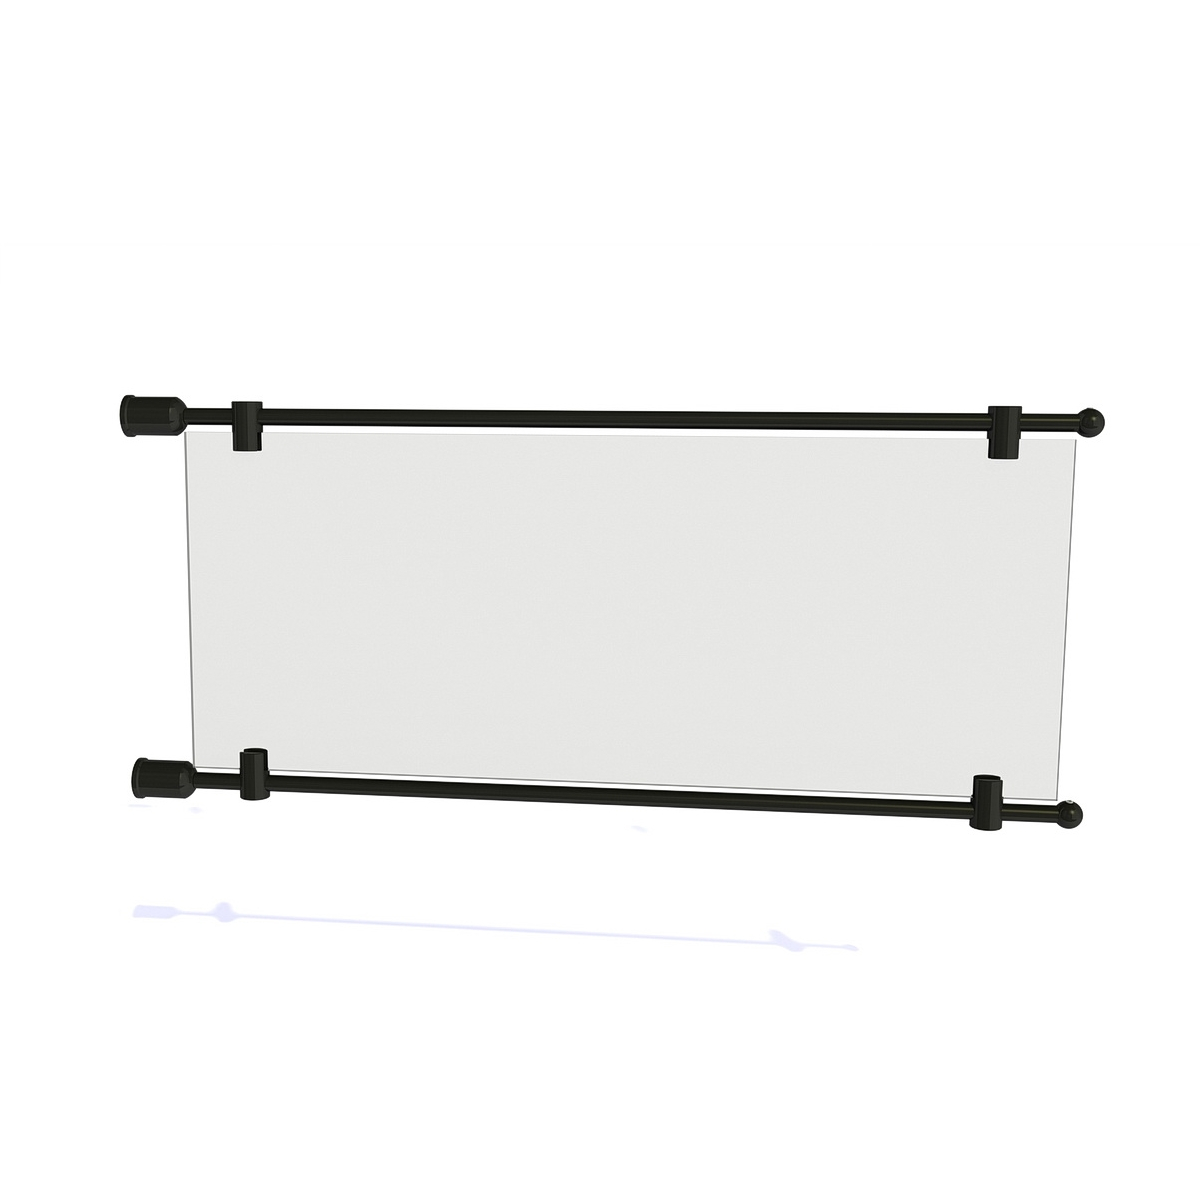 """3/8'' Diameter Rod Projecting Sign, Aluminum Black Matte Anodized , 21 13/16"""" including the wall mounts. Material thickness up to 5/16"""""""